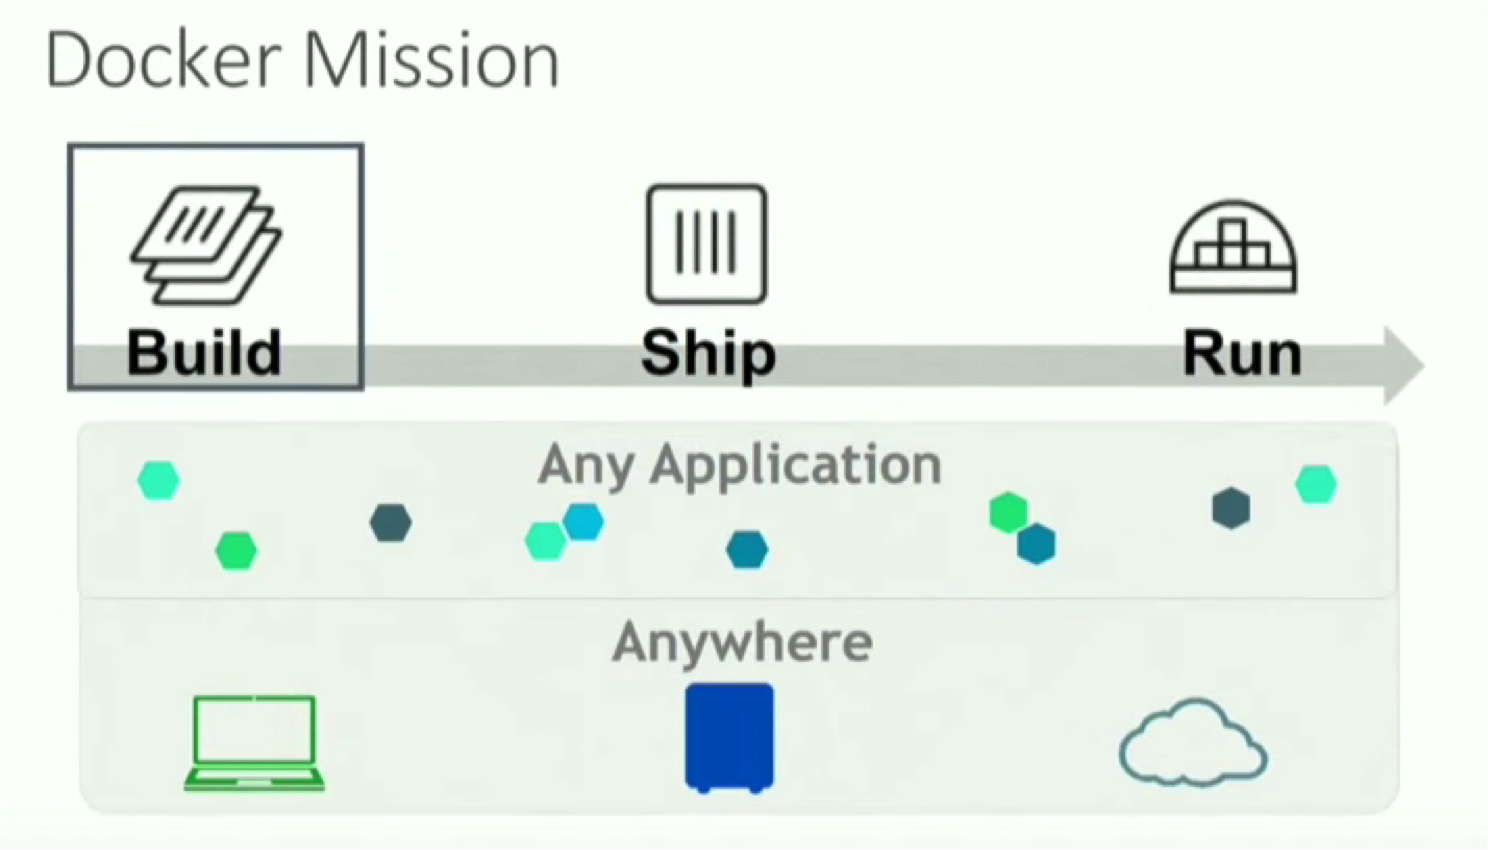 The Docker Mission: Build, Ship, Run